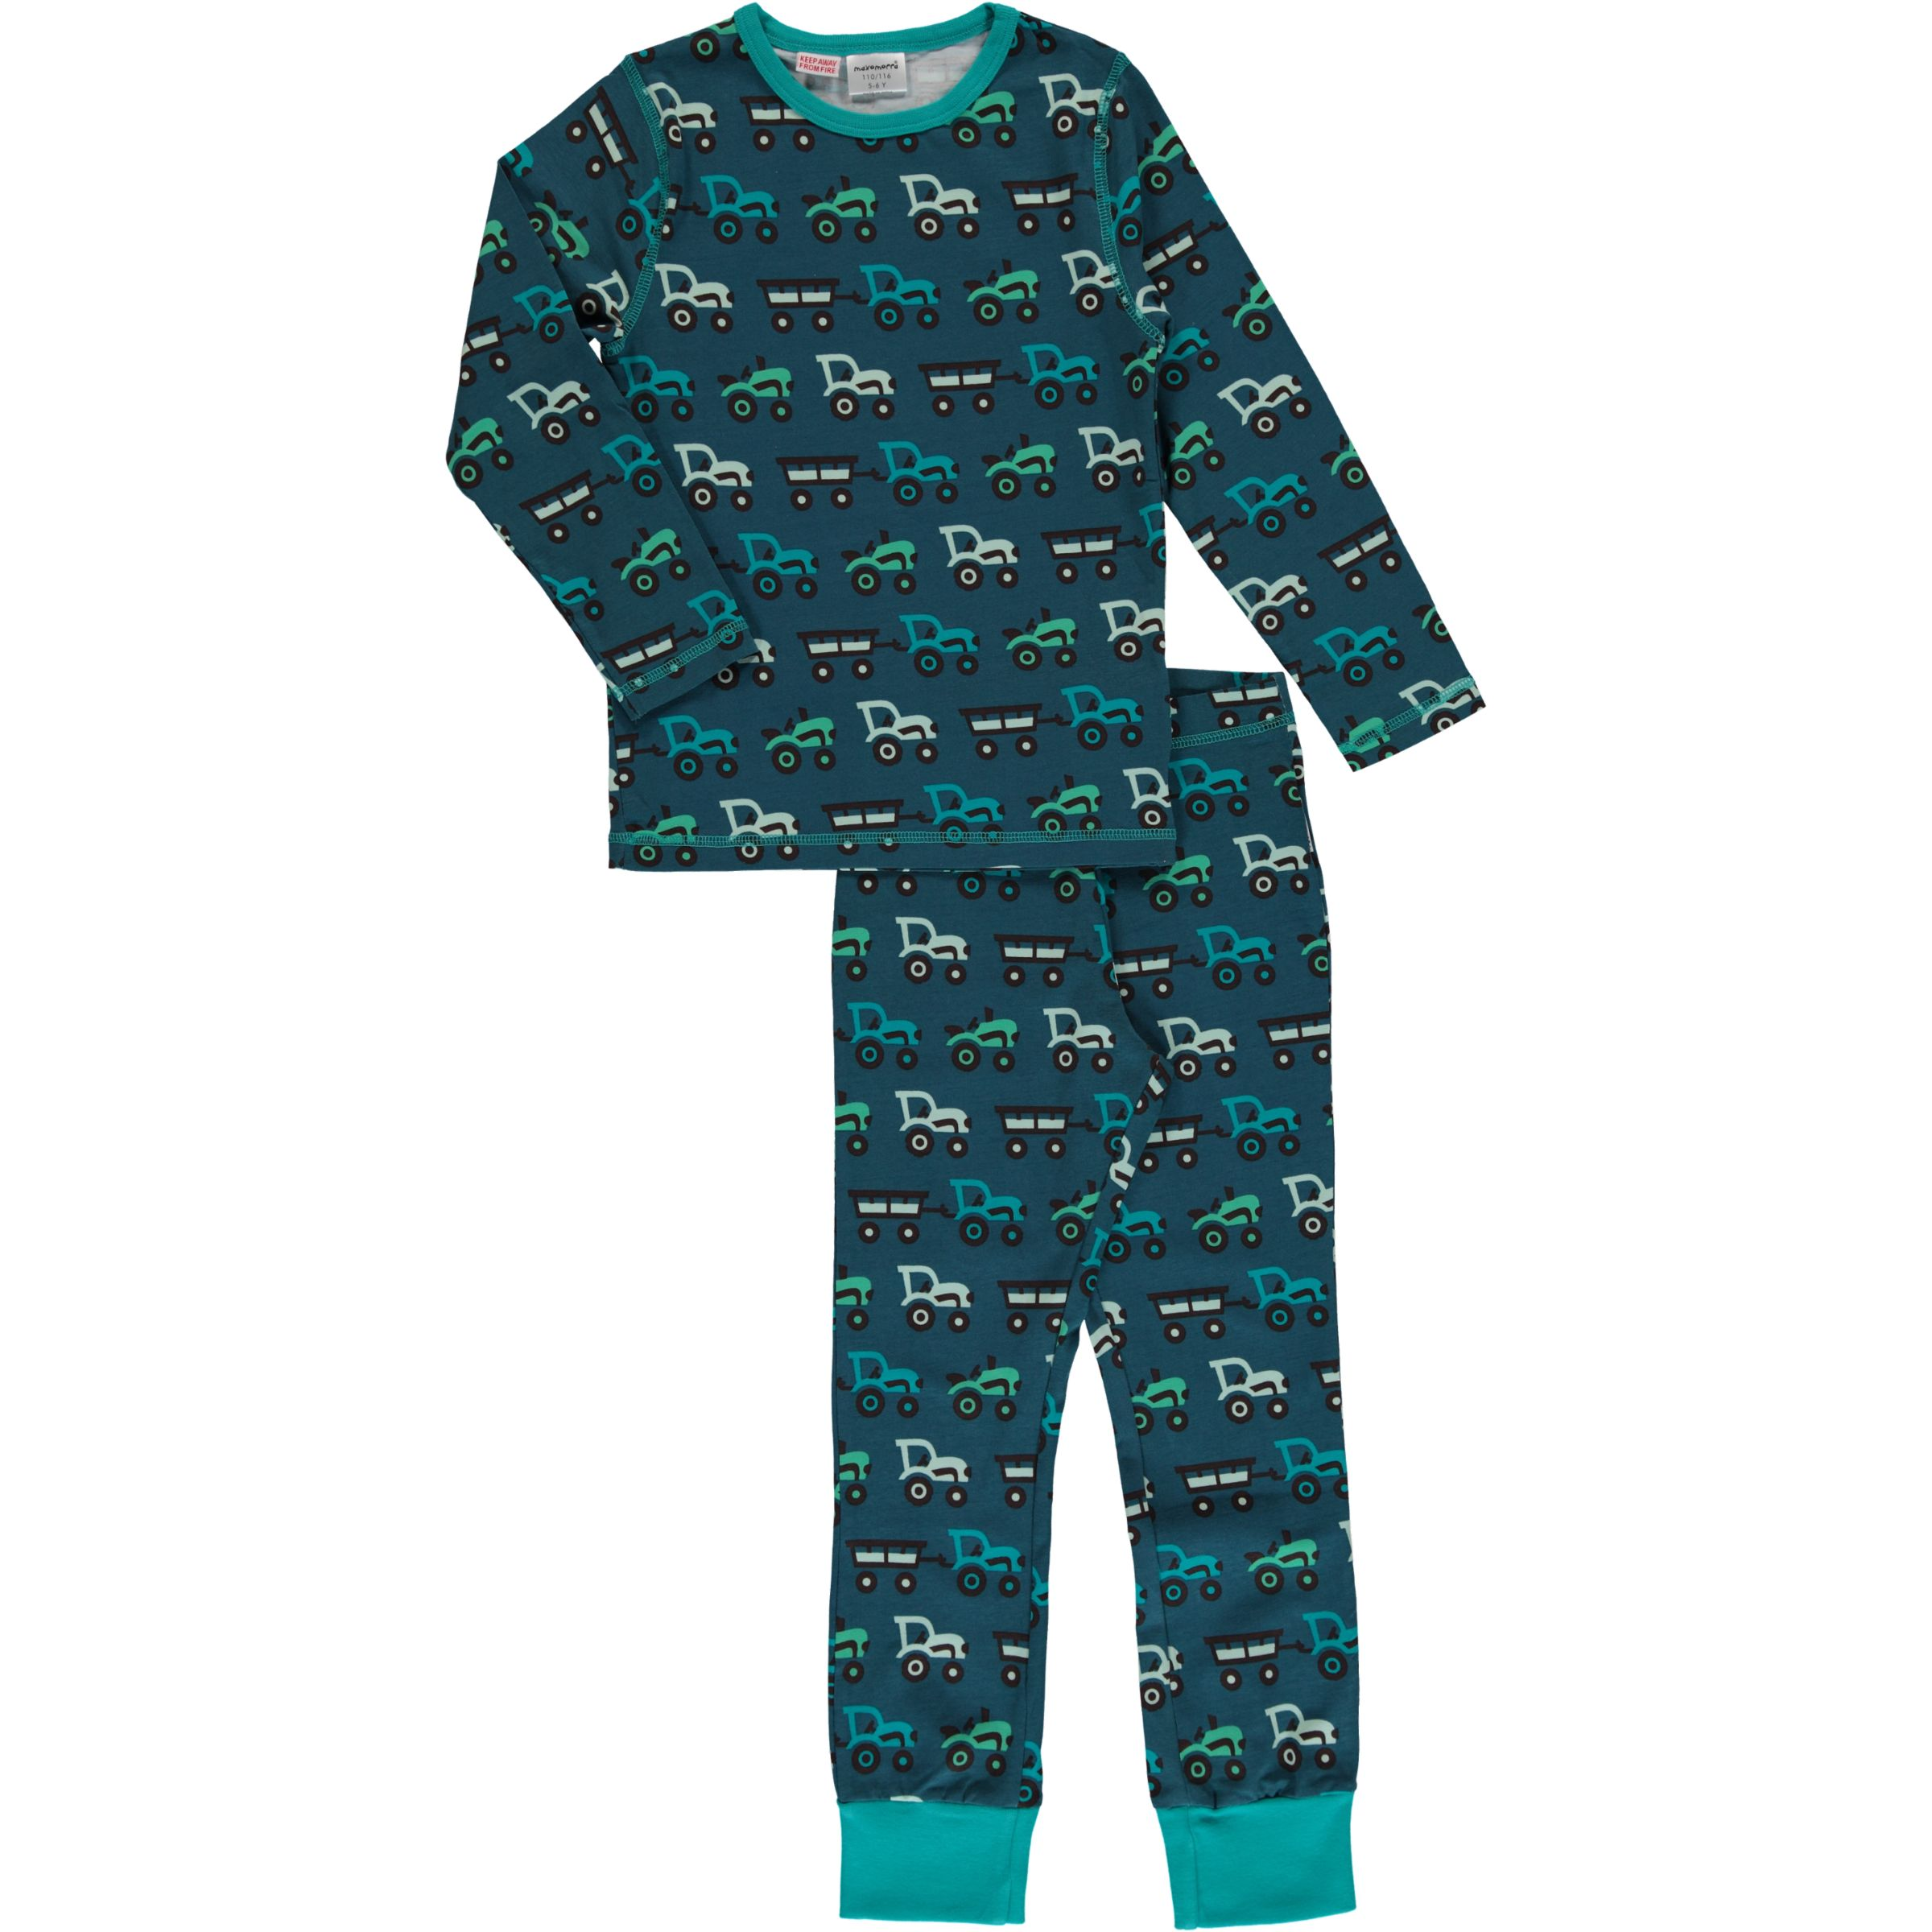 10316b626115 Maxomorra organic cotton pyjamas in tractors print